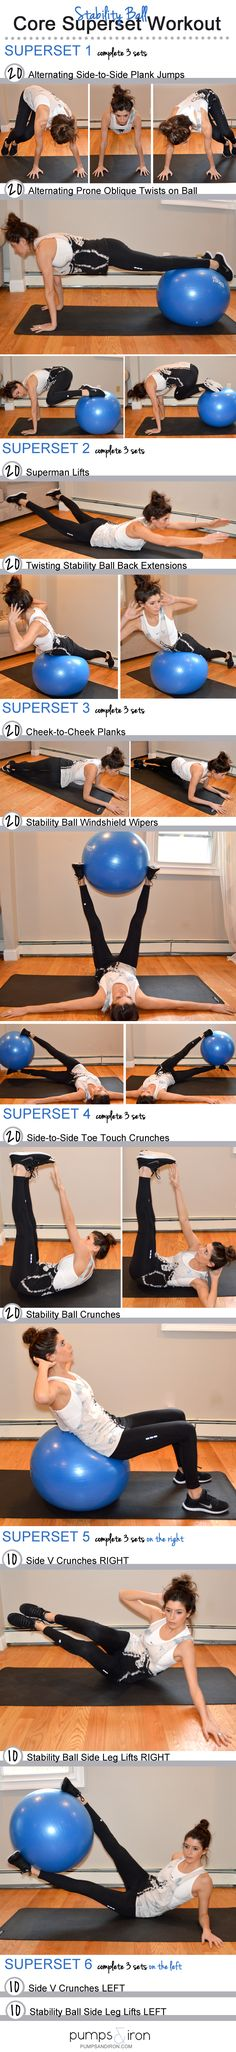 Ball Superset Core Workout Stability Ball Superset Core Workout started sweating just reading this!Stability Ball Superset Core Workout started sweating just reading this! Fitness Workouts, Sport Fitness, At Home Workouts, Fitness Motivation, Ball Workouts, Core Workouts, Core Exercises, Workout Exercises, Workout Ideas